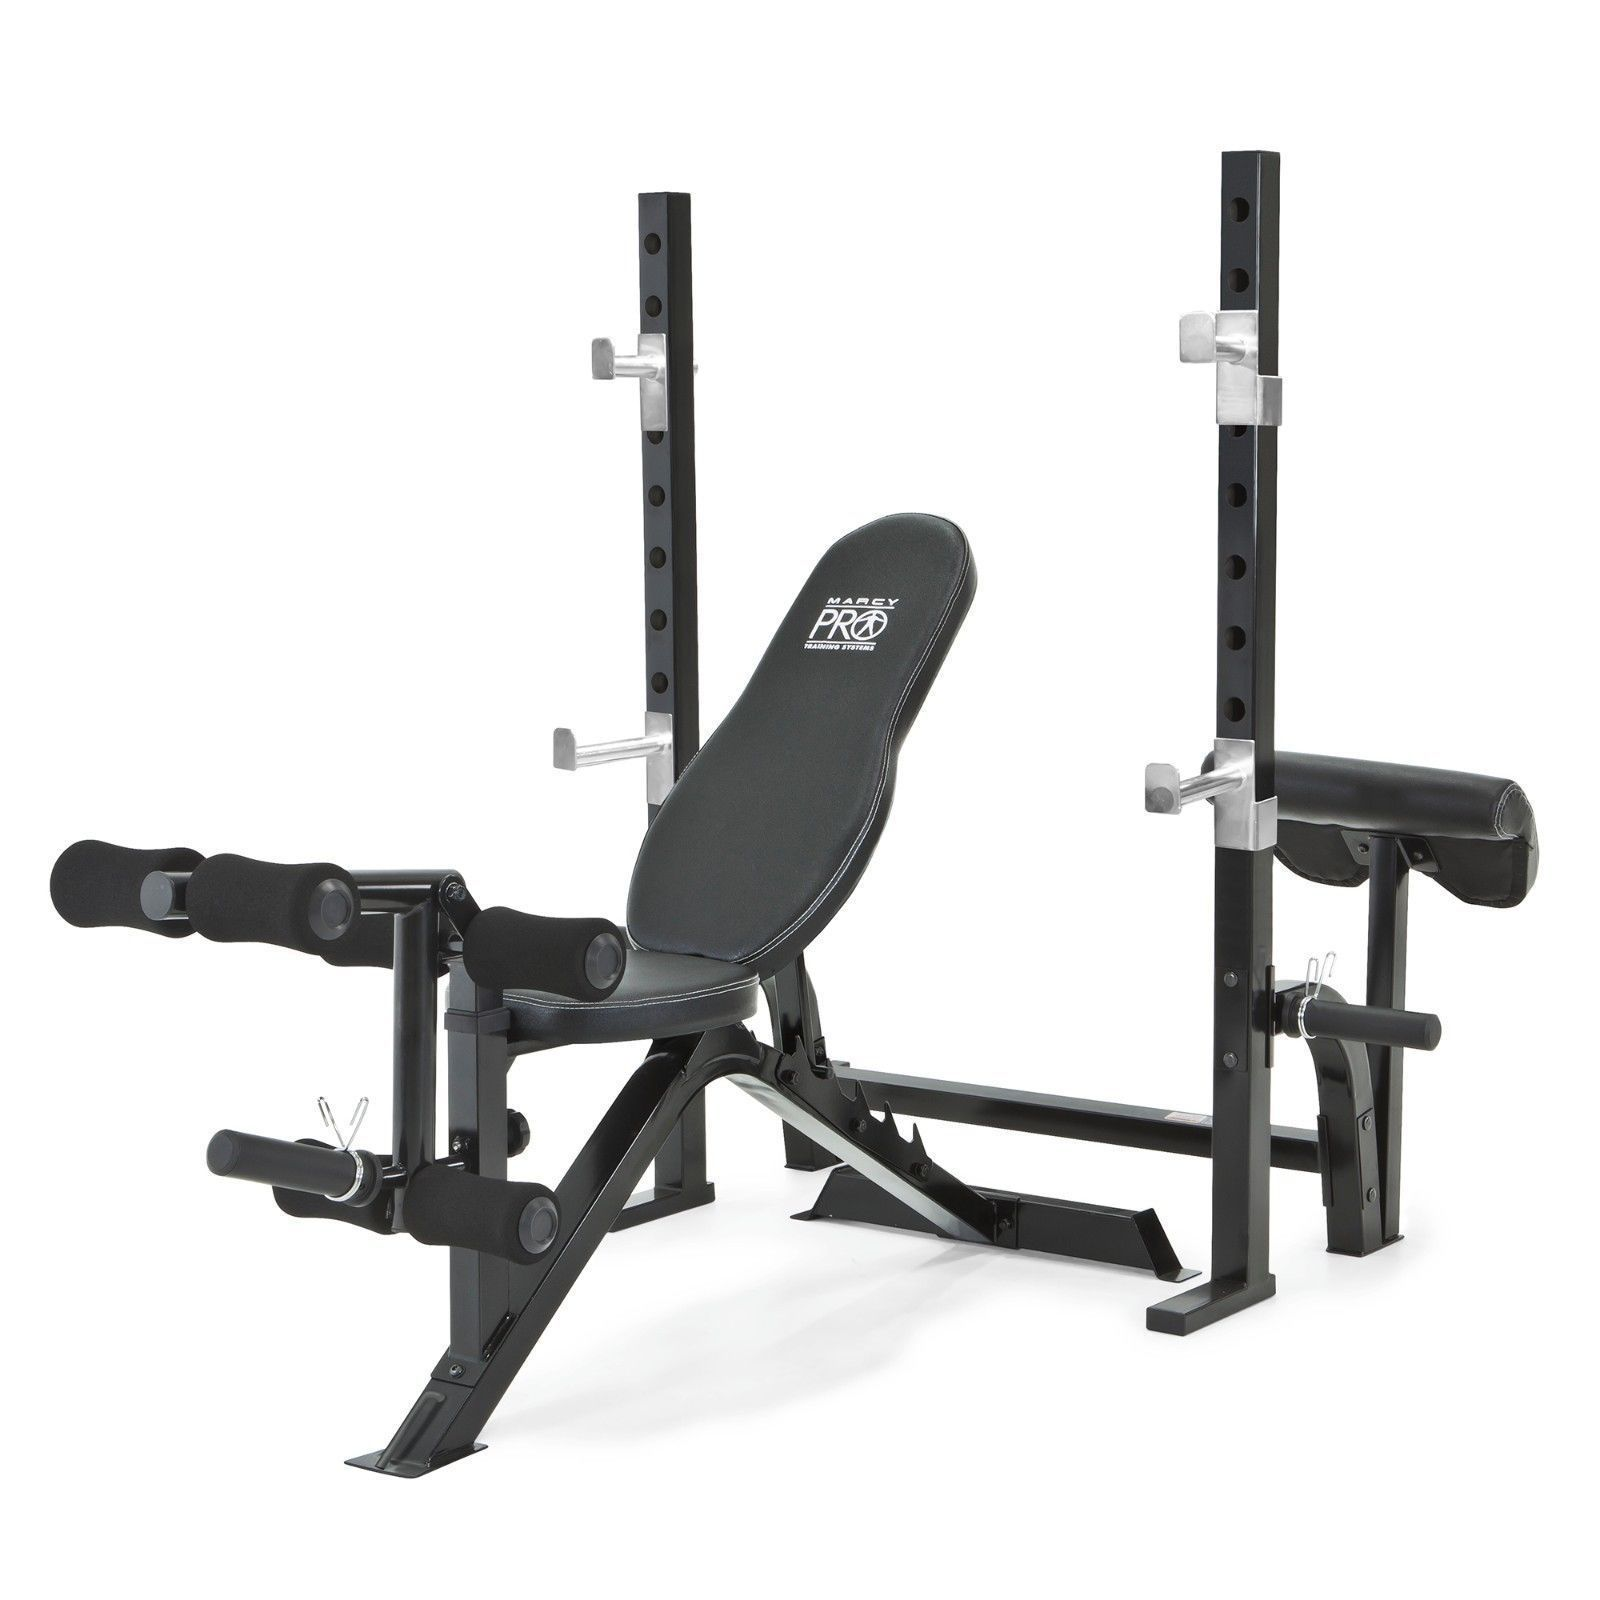 Marcy Pro 2pc Olympic Bench And Squat Rack Pm 842 W Preacher Curl Pad Work Out Wear Exercise Benches Olympic Weights Weight Benches